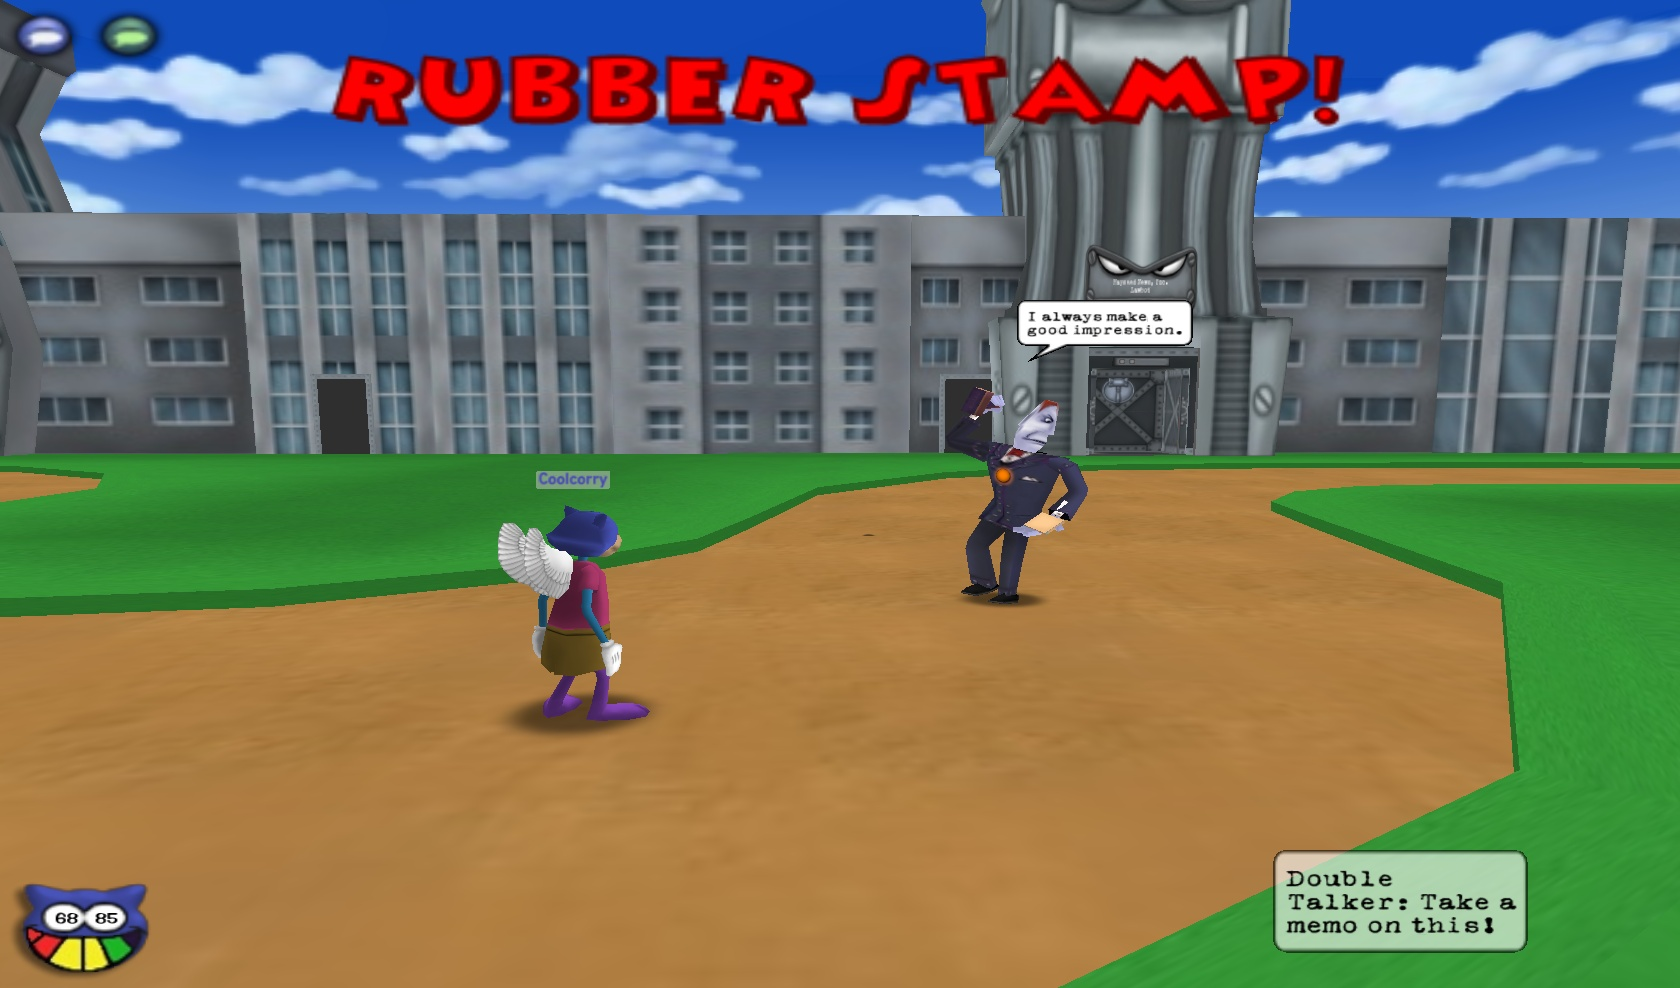 Rubber Stamp Toontown Wiki Fandom Powered By Wikia